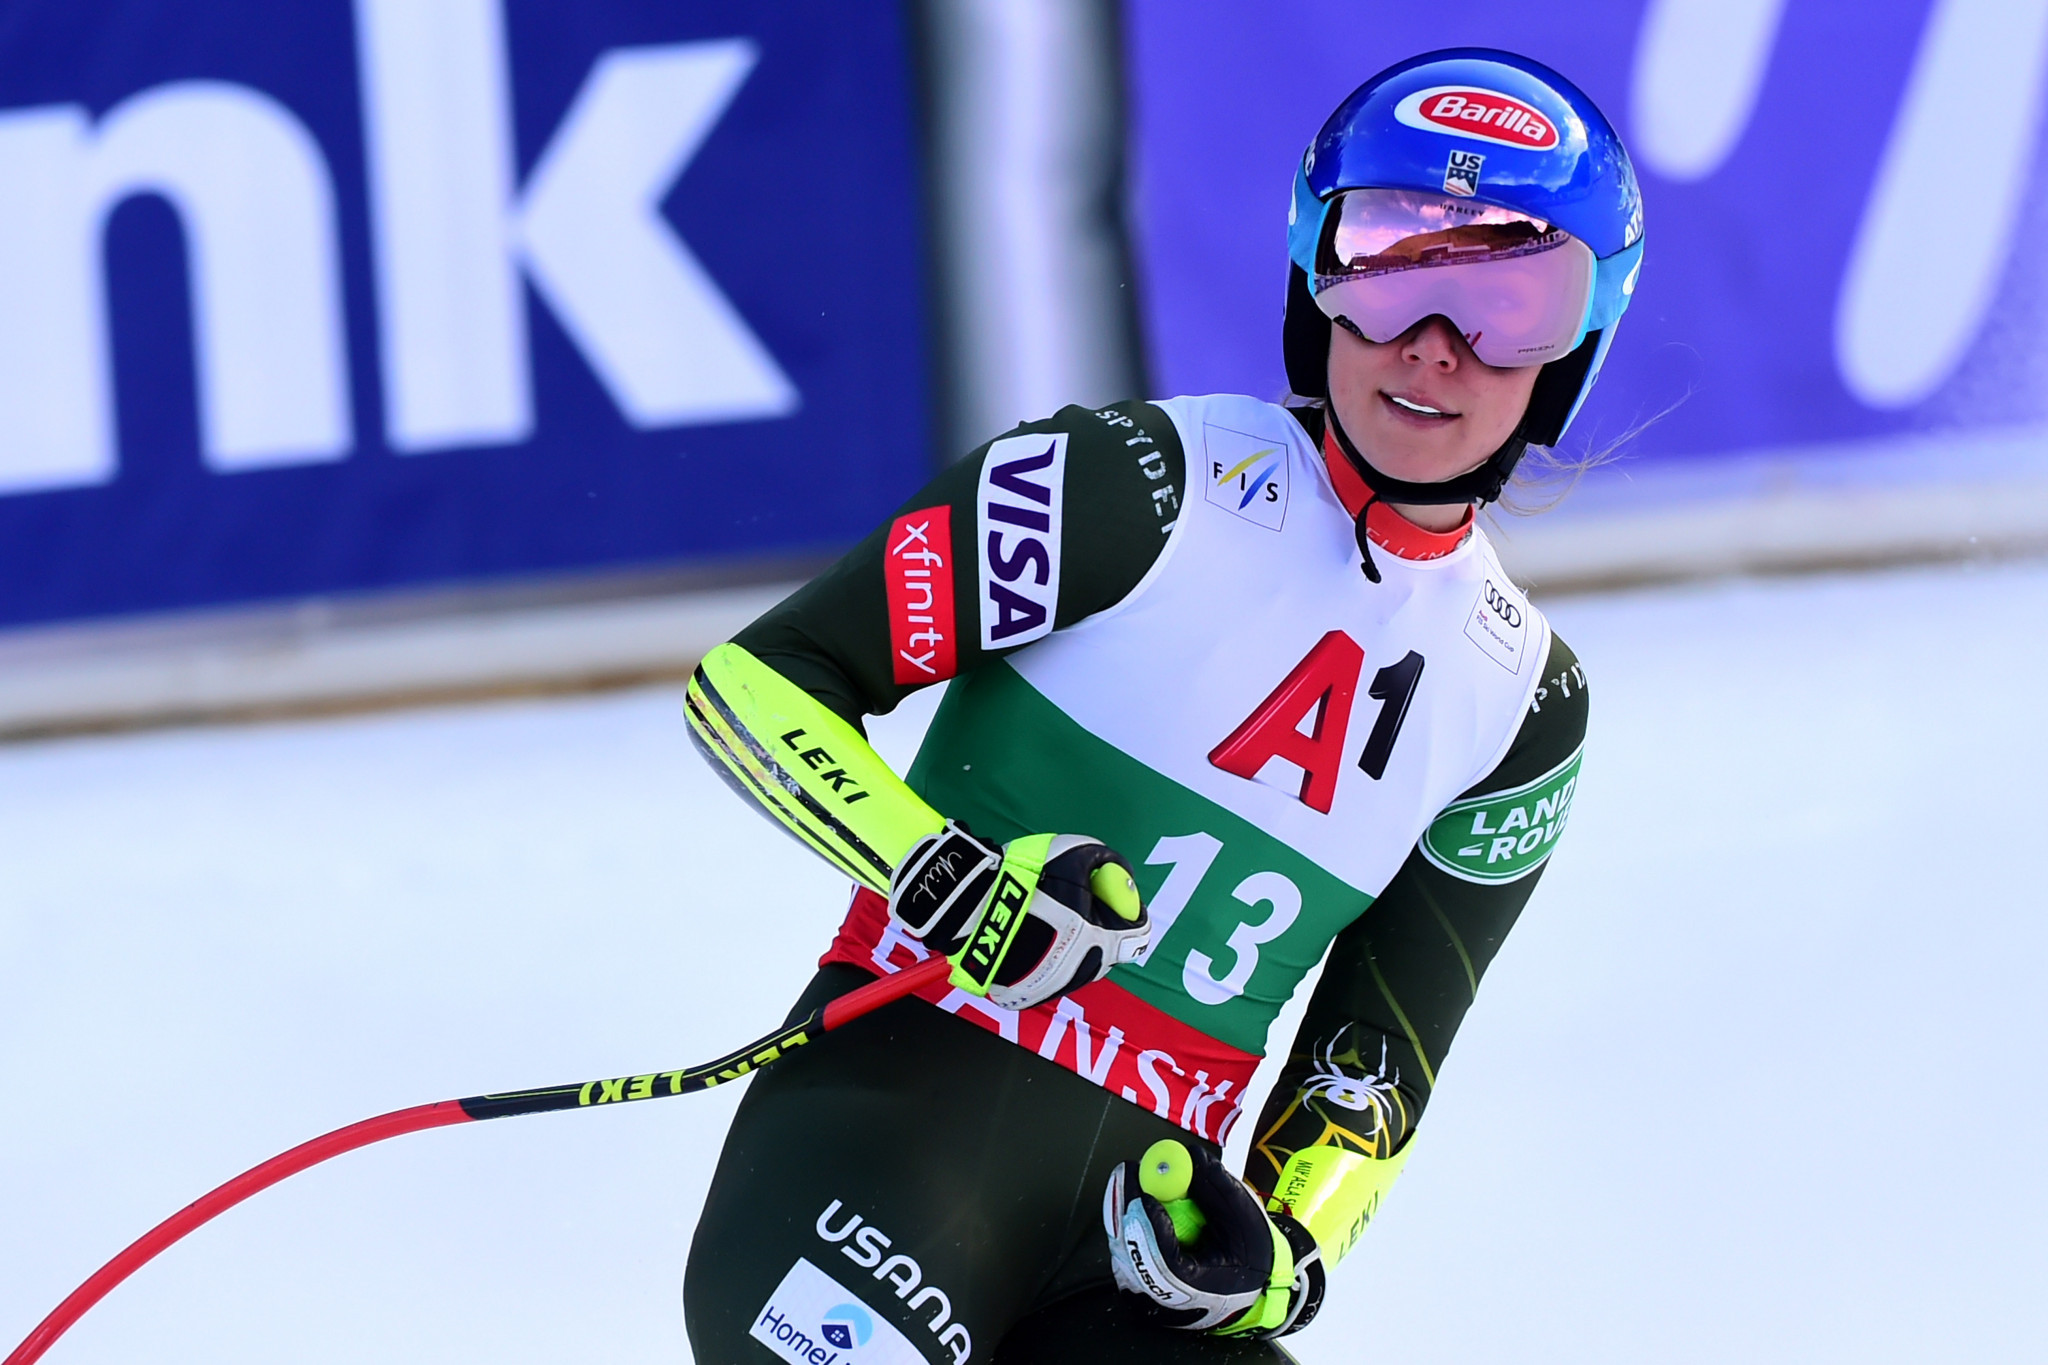 Mikaela Shiffrin had been due to make her return to action at the event in Åre ©Getty Images